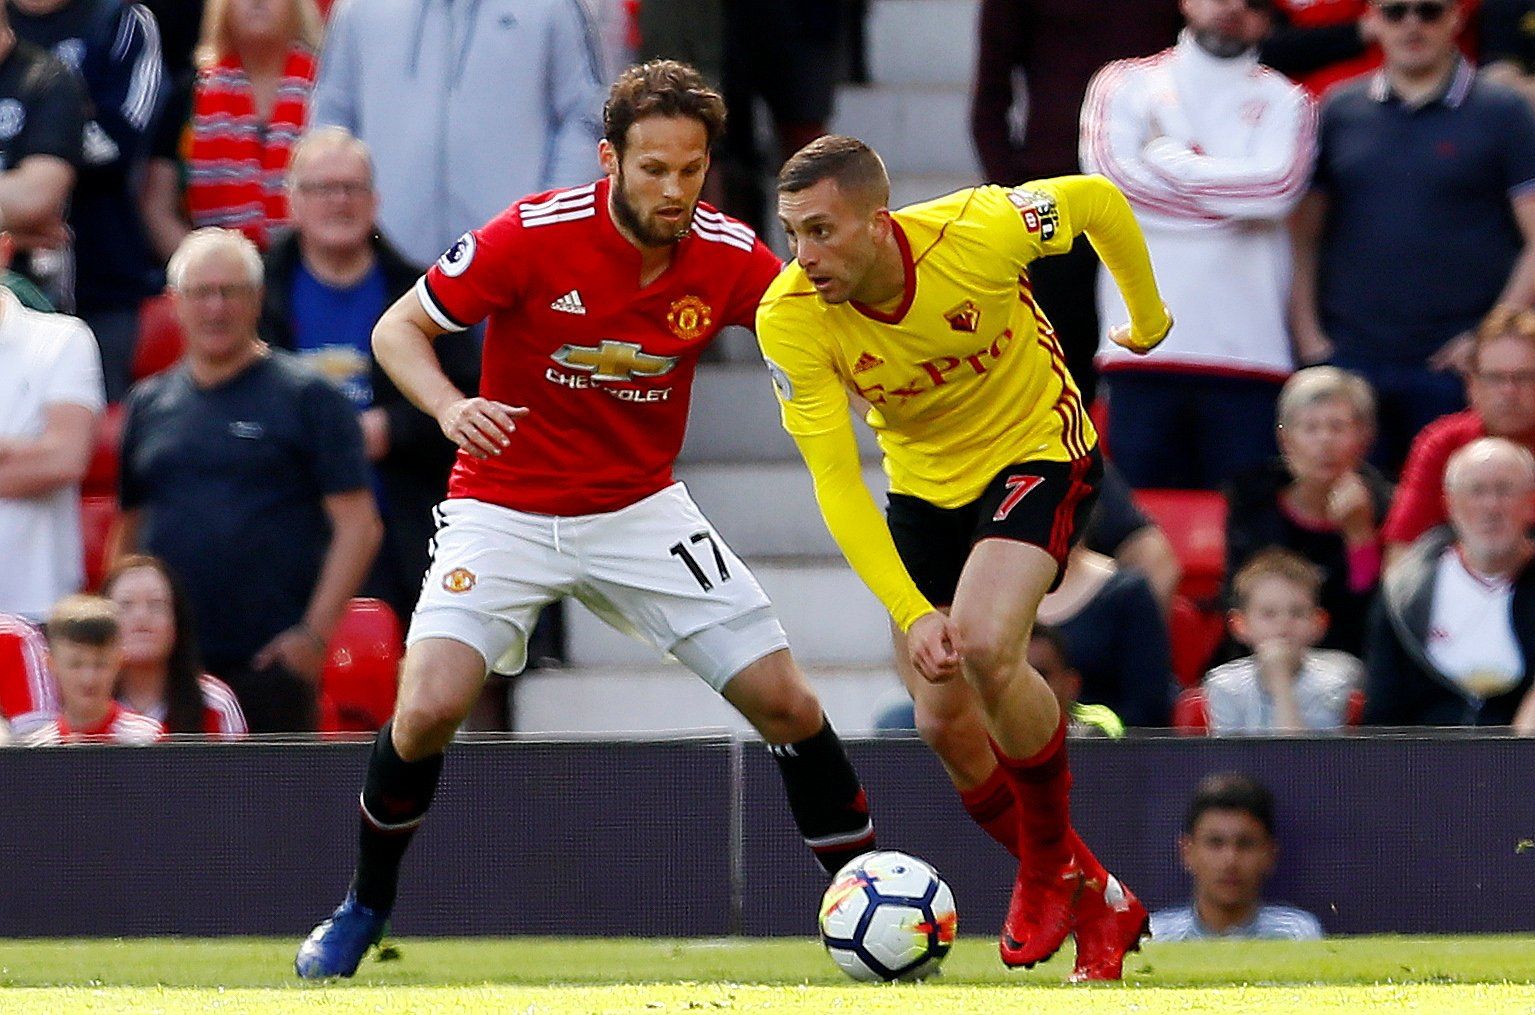 Daley Blind in action against Watford